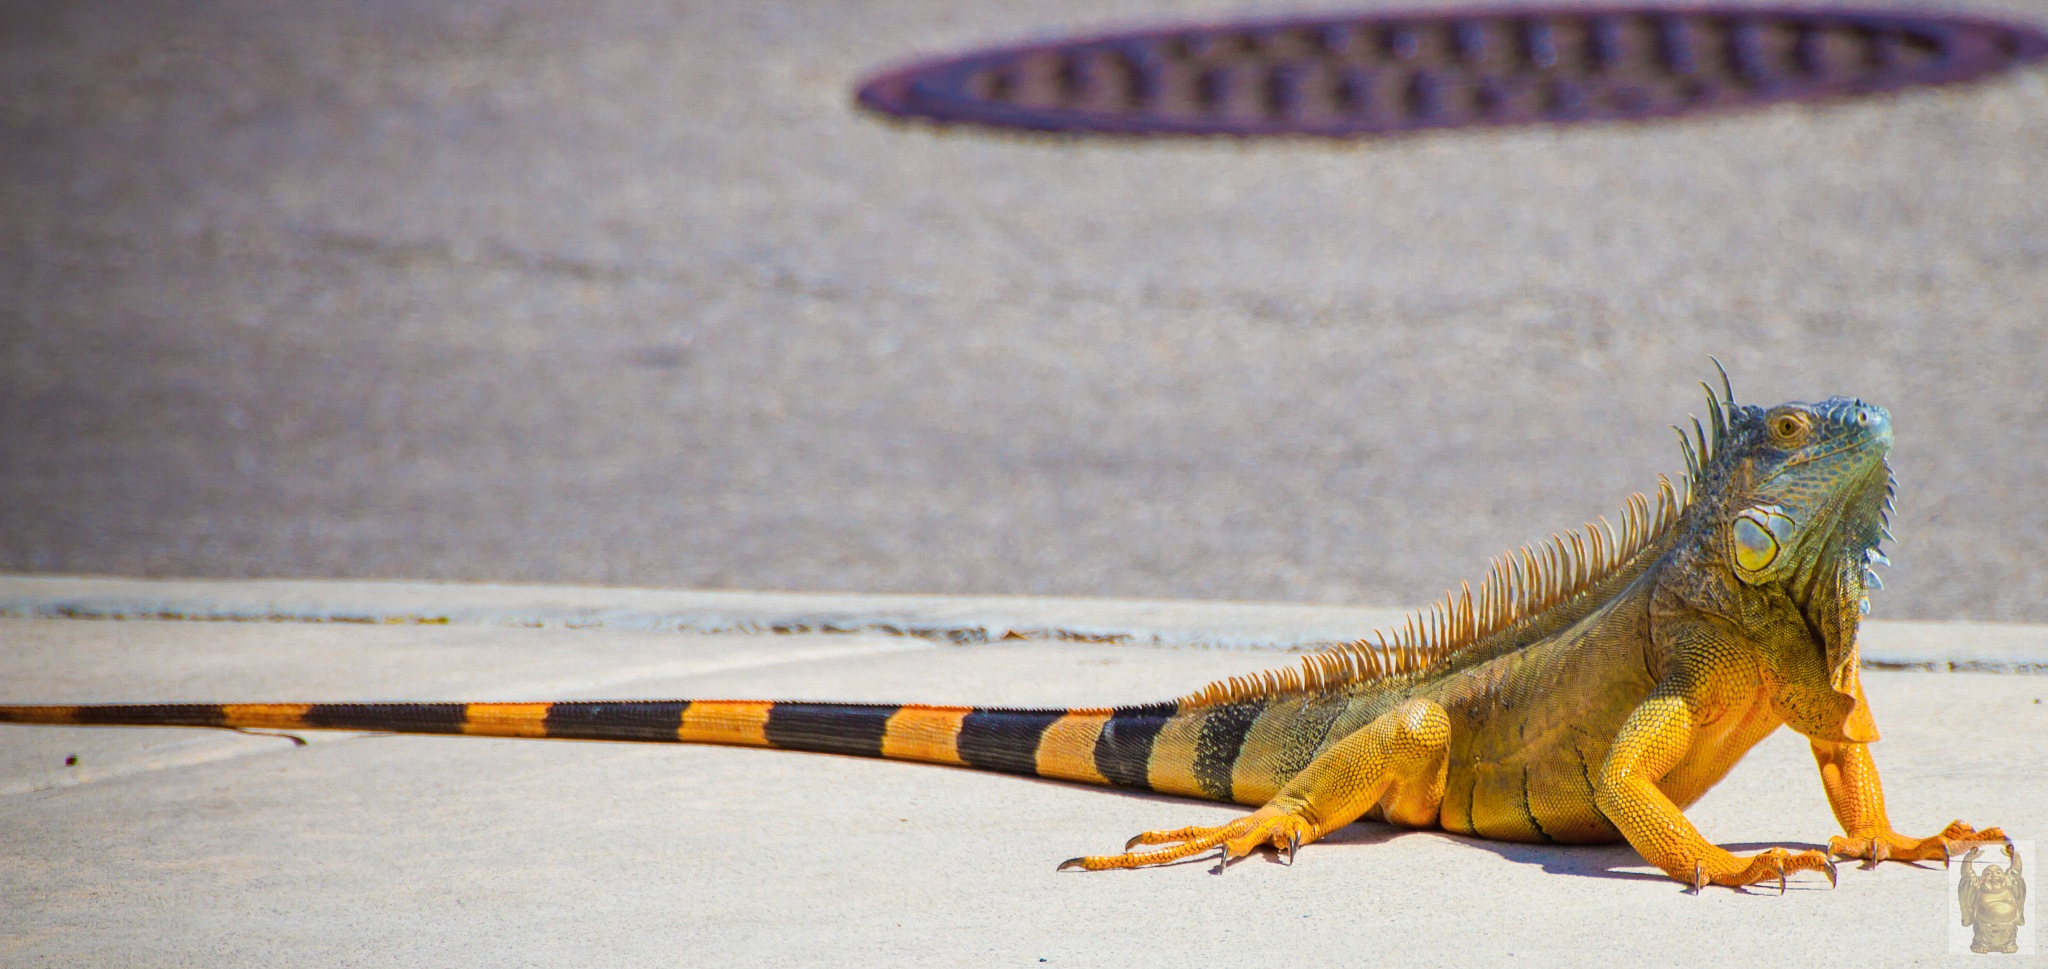 Young Iguana, checking me out by Gary Franklin